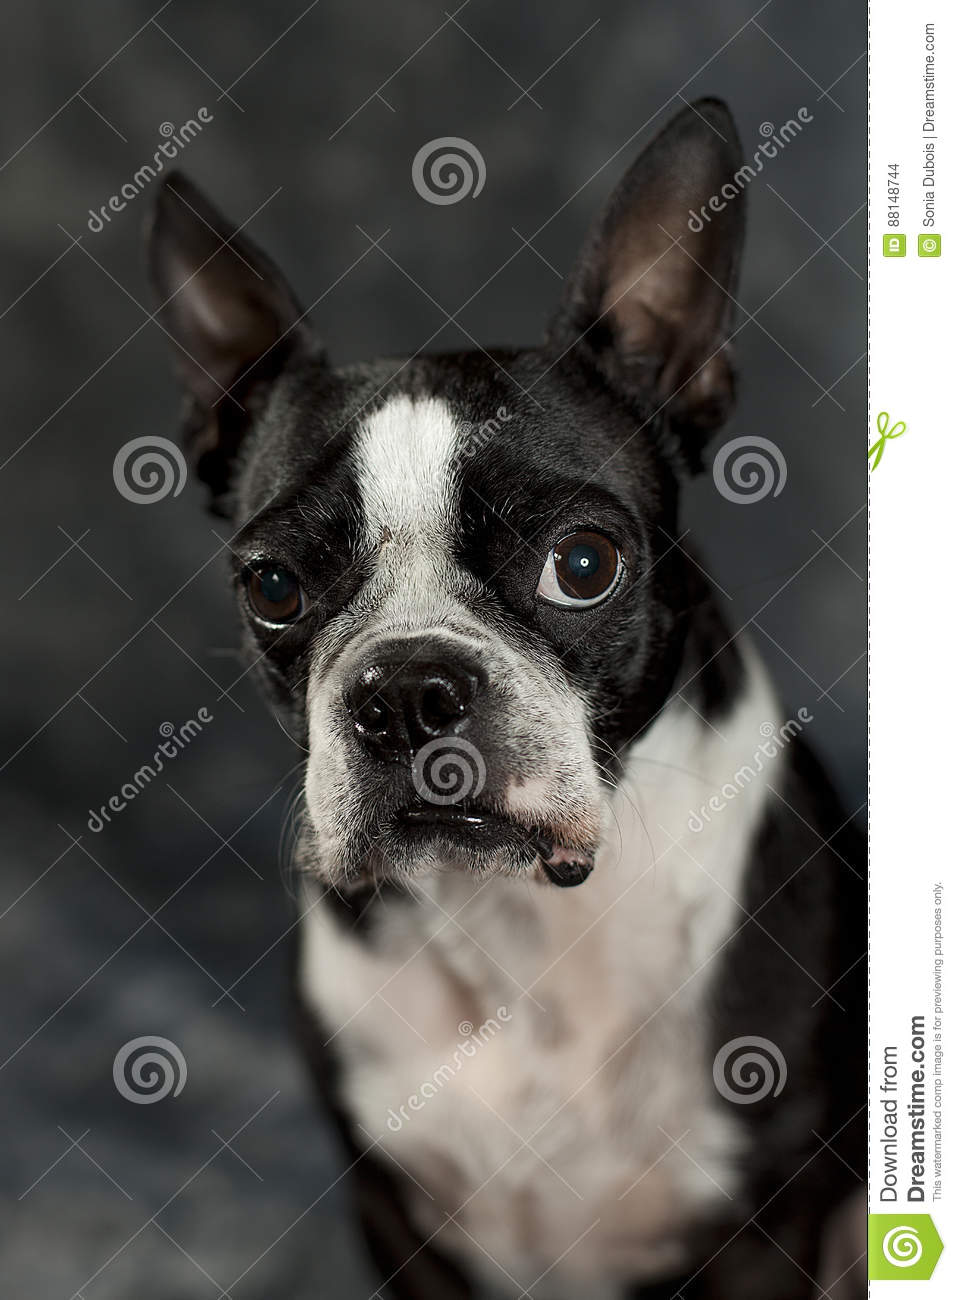 Boston Terrier Stock Photo Image Of Puppy Boston Modeling 88148744